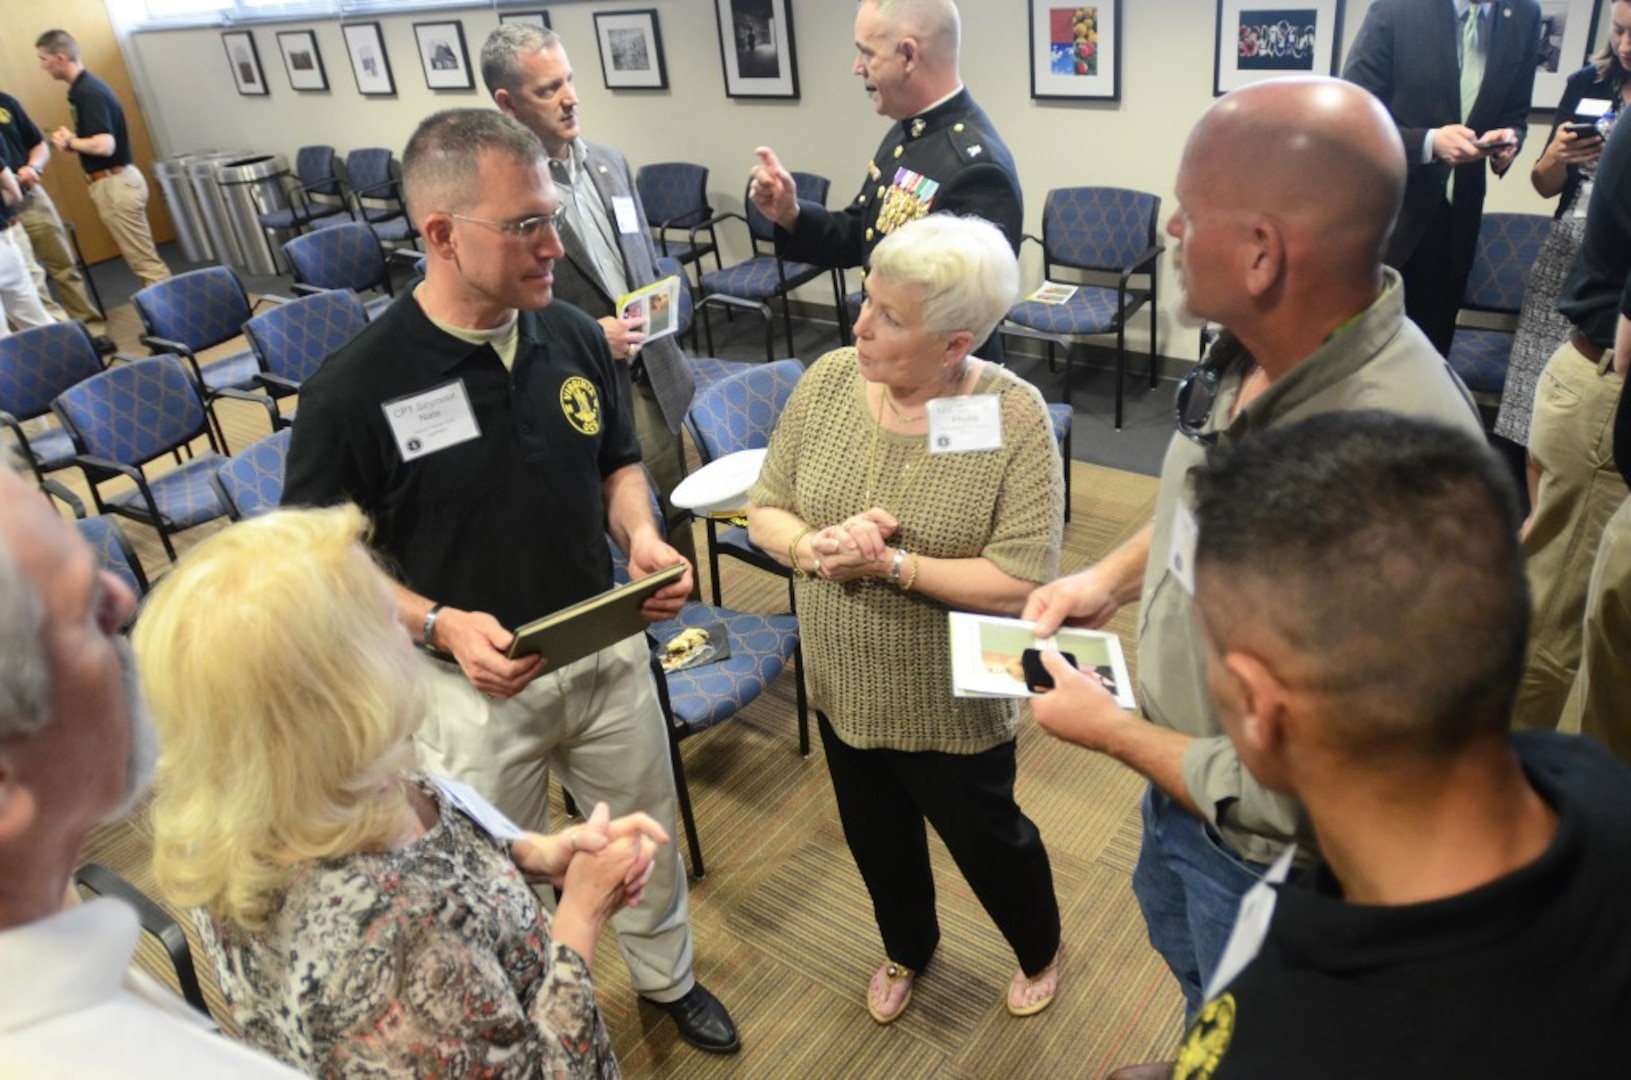 An officer candidates in class 58 of the Virginia Army National Guard Officer Candidate School speaks with the family of Capt. Harry Q. Rose at a ceremony commemorating the 58th birthday of the Virginia OCS April 19, 2016, at J. Sargeant Reynolds Community College's Downtown Campus in Richmond, Virginia. Rose, a graduate of Class VIII, was killed in Vietnam in 1969 and remains the only Virginia OCS graduate to have been killed in action. (Photo by Master Sgt. A.J. Coyne, Virginia Guard Public Affairs)